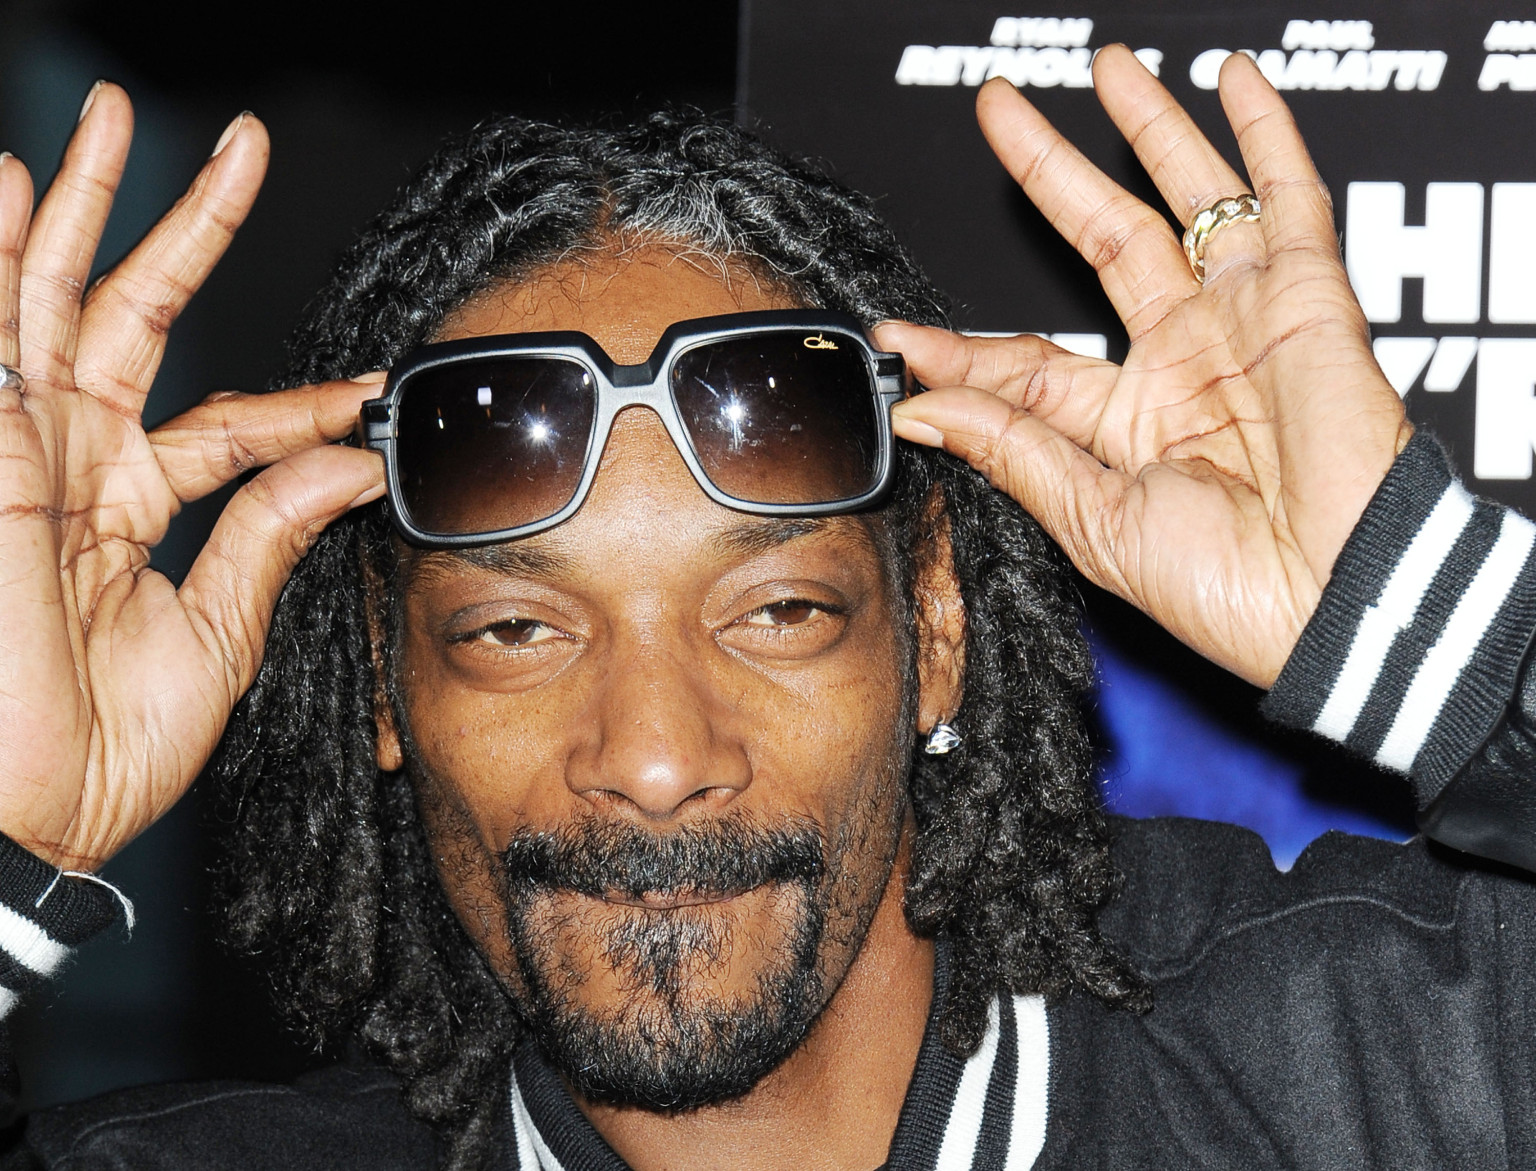 SNOOP DOGG CLAIMS TOP SPOT ON BILLBOARD R&B / HIP-HOP ALBUM CHARTS